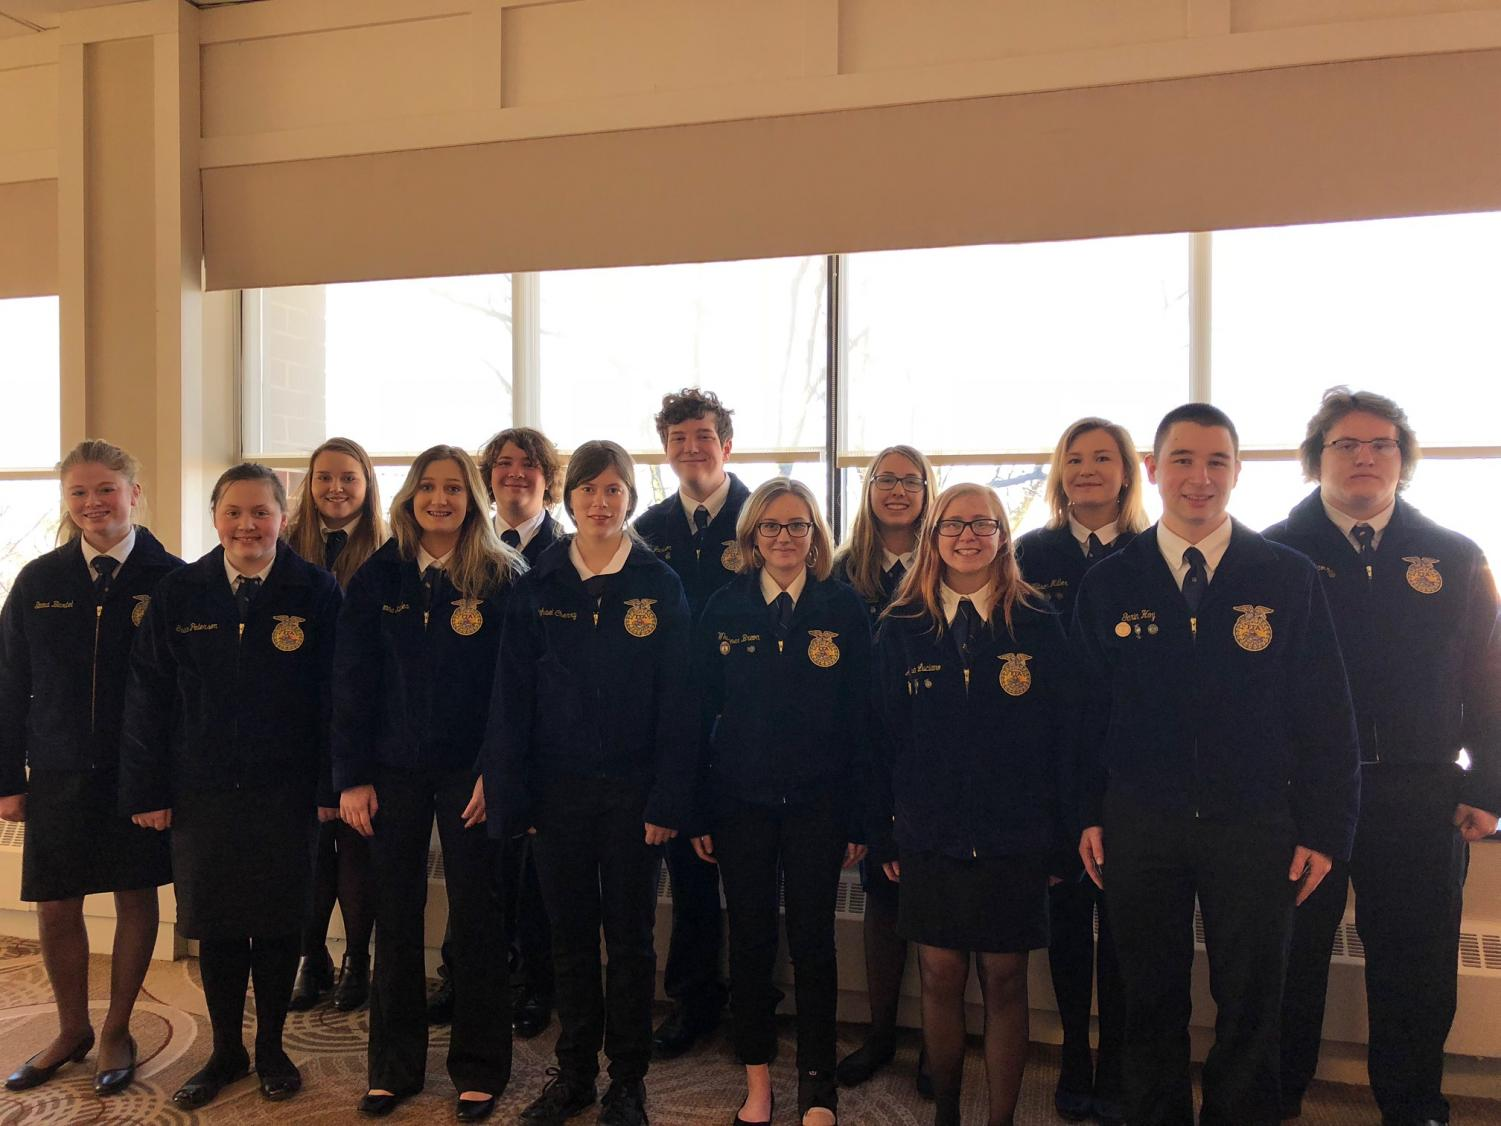 Tyrone Area FFA members who attended the 20th ACES event in Harrisburg on Feb. 9-10. Left to right, back row - Emma Bartel, McKenna Chronister, Noah Frantz, Colin Jackson, Karly Diebold, Allison Miller, Guy Williams; front row - Grace Peterson, McKenna Yaudes, Olivia Beck, Whisper Breon, Alyssa Luciano, and Garin Hoy